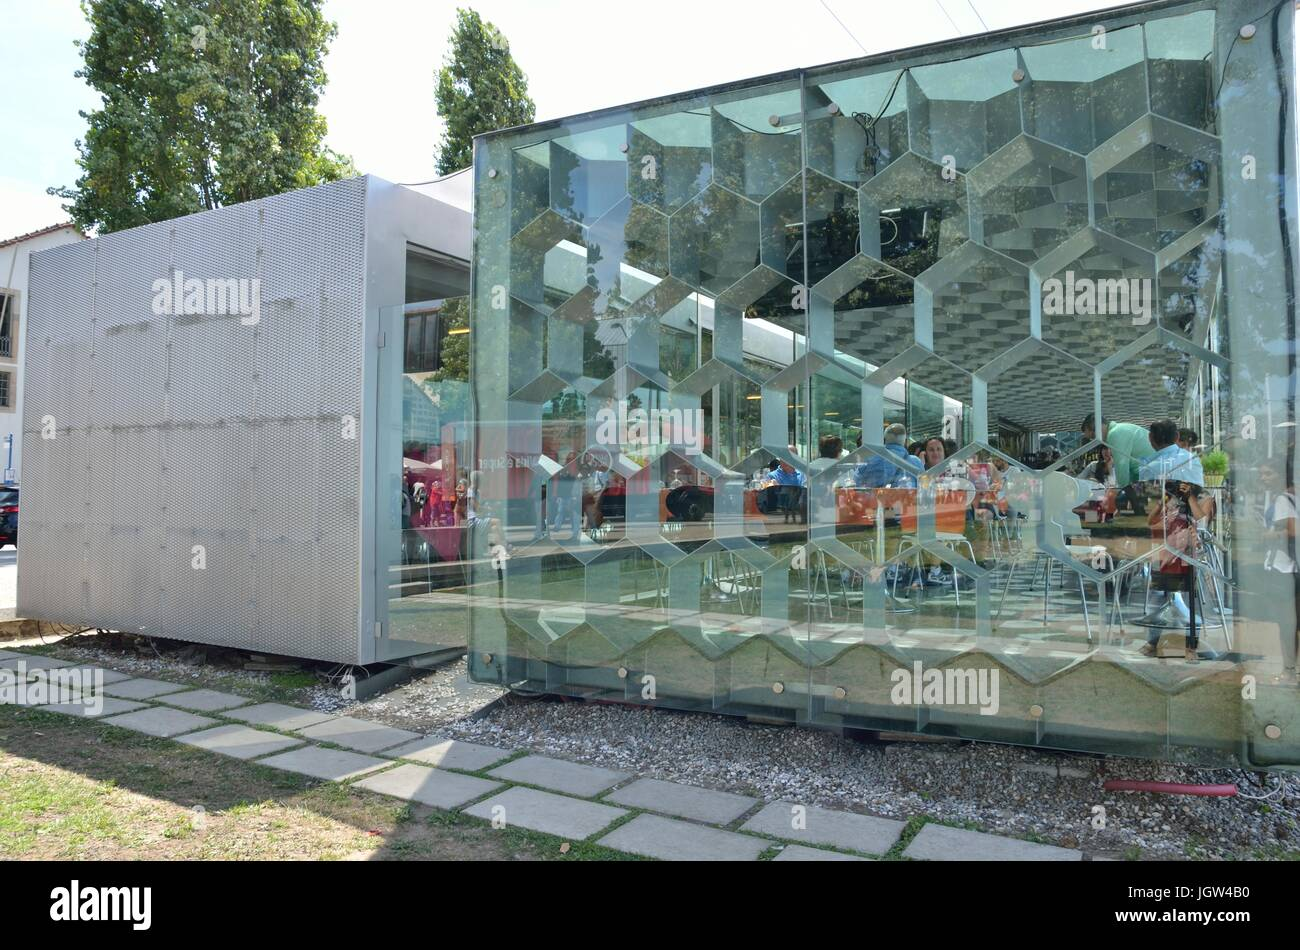 Modern Restaurant Exterior High Resolution Stock Photography And Images Alamy